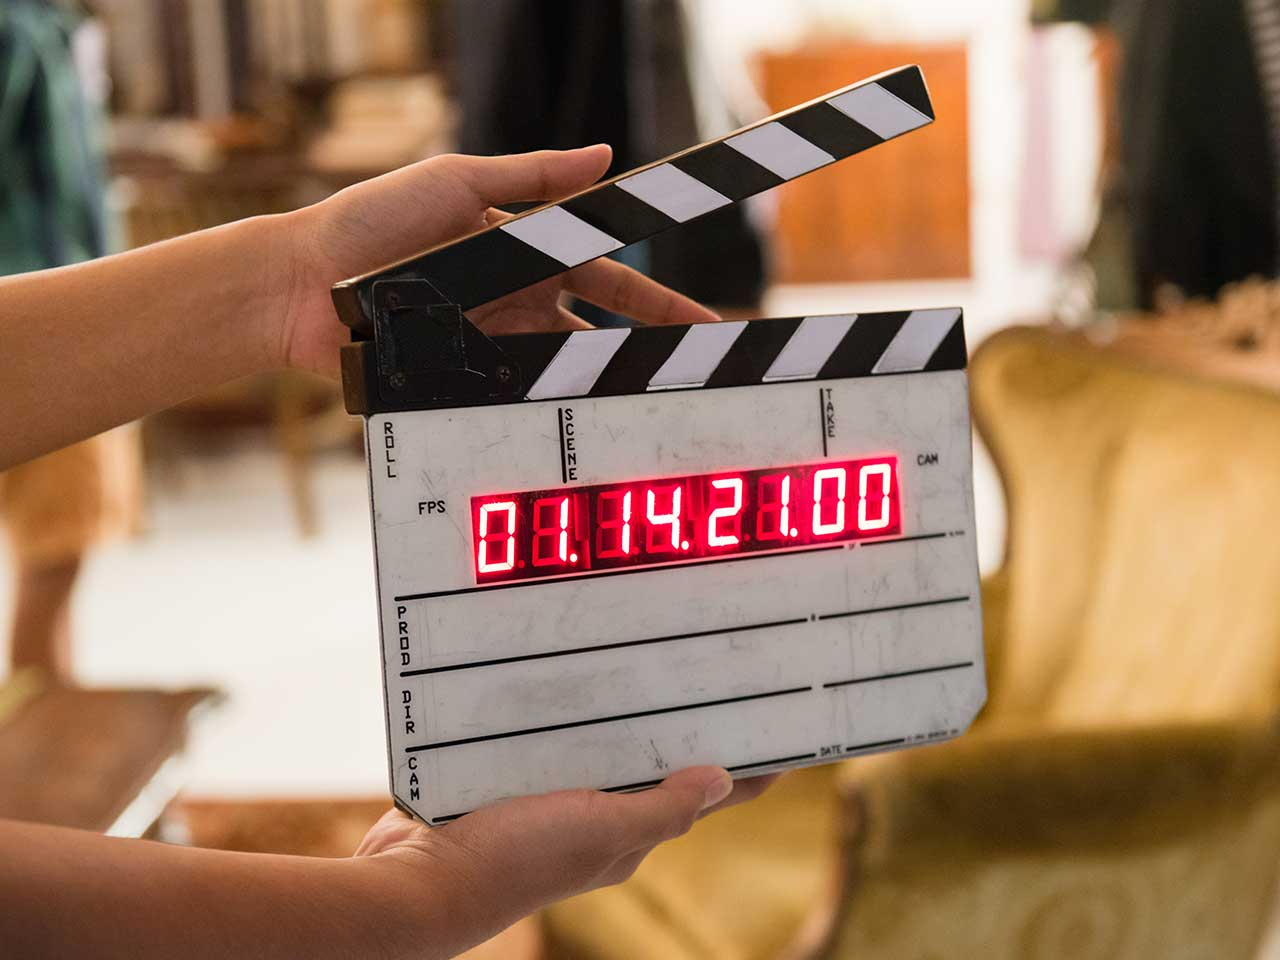 Film clapper board inside a home location